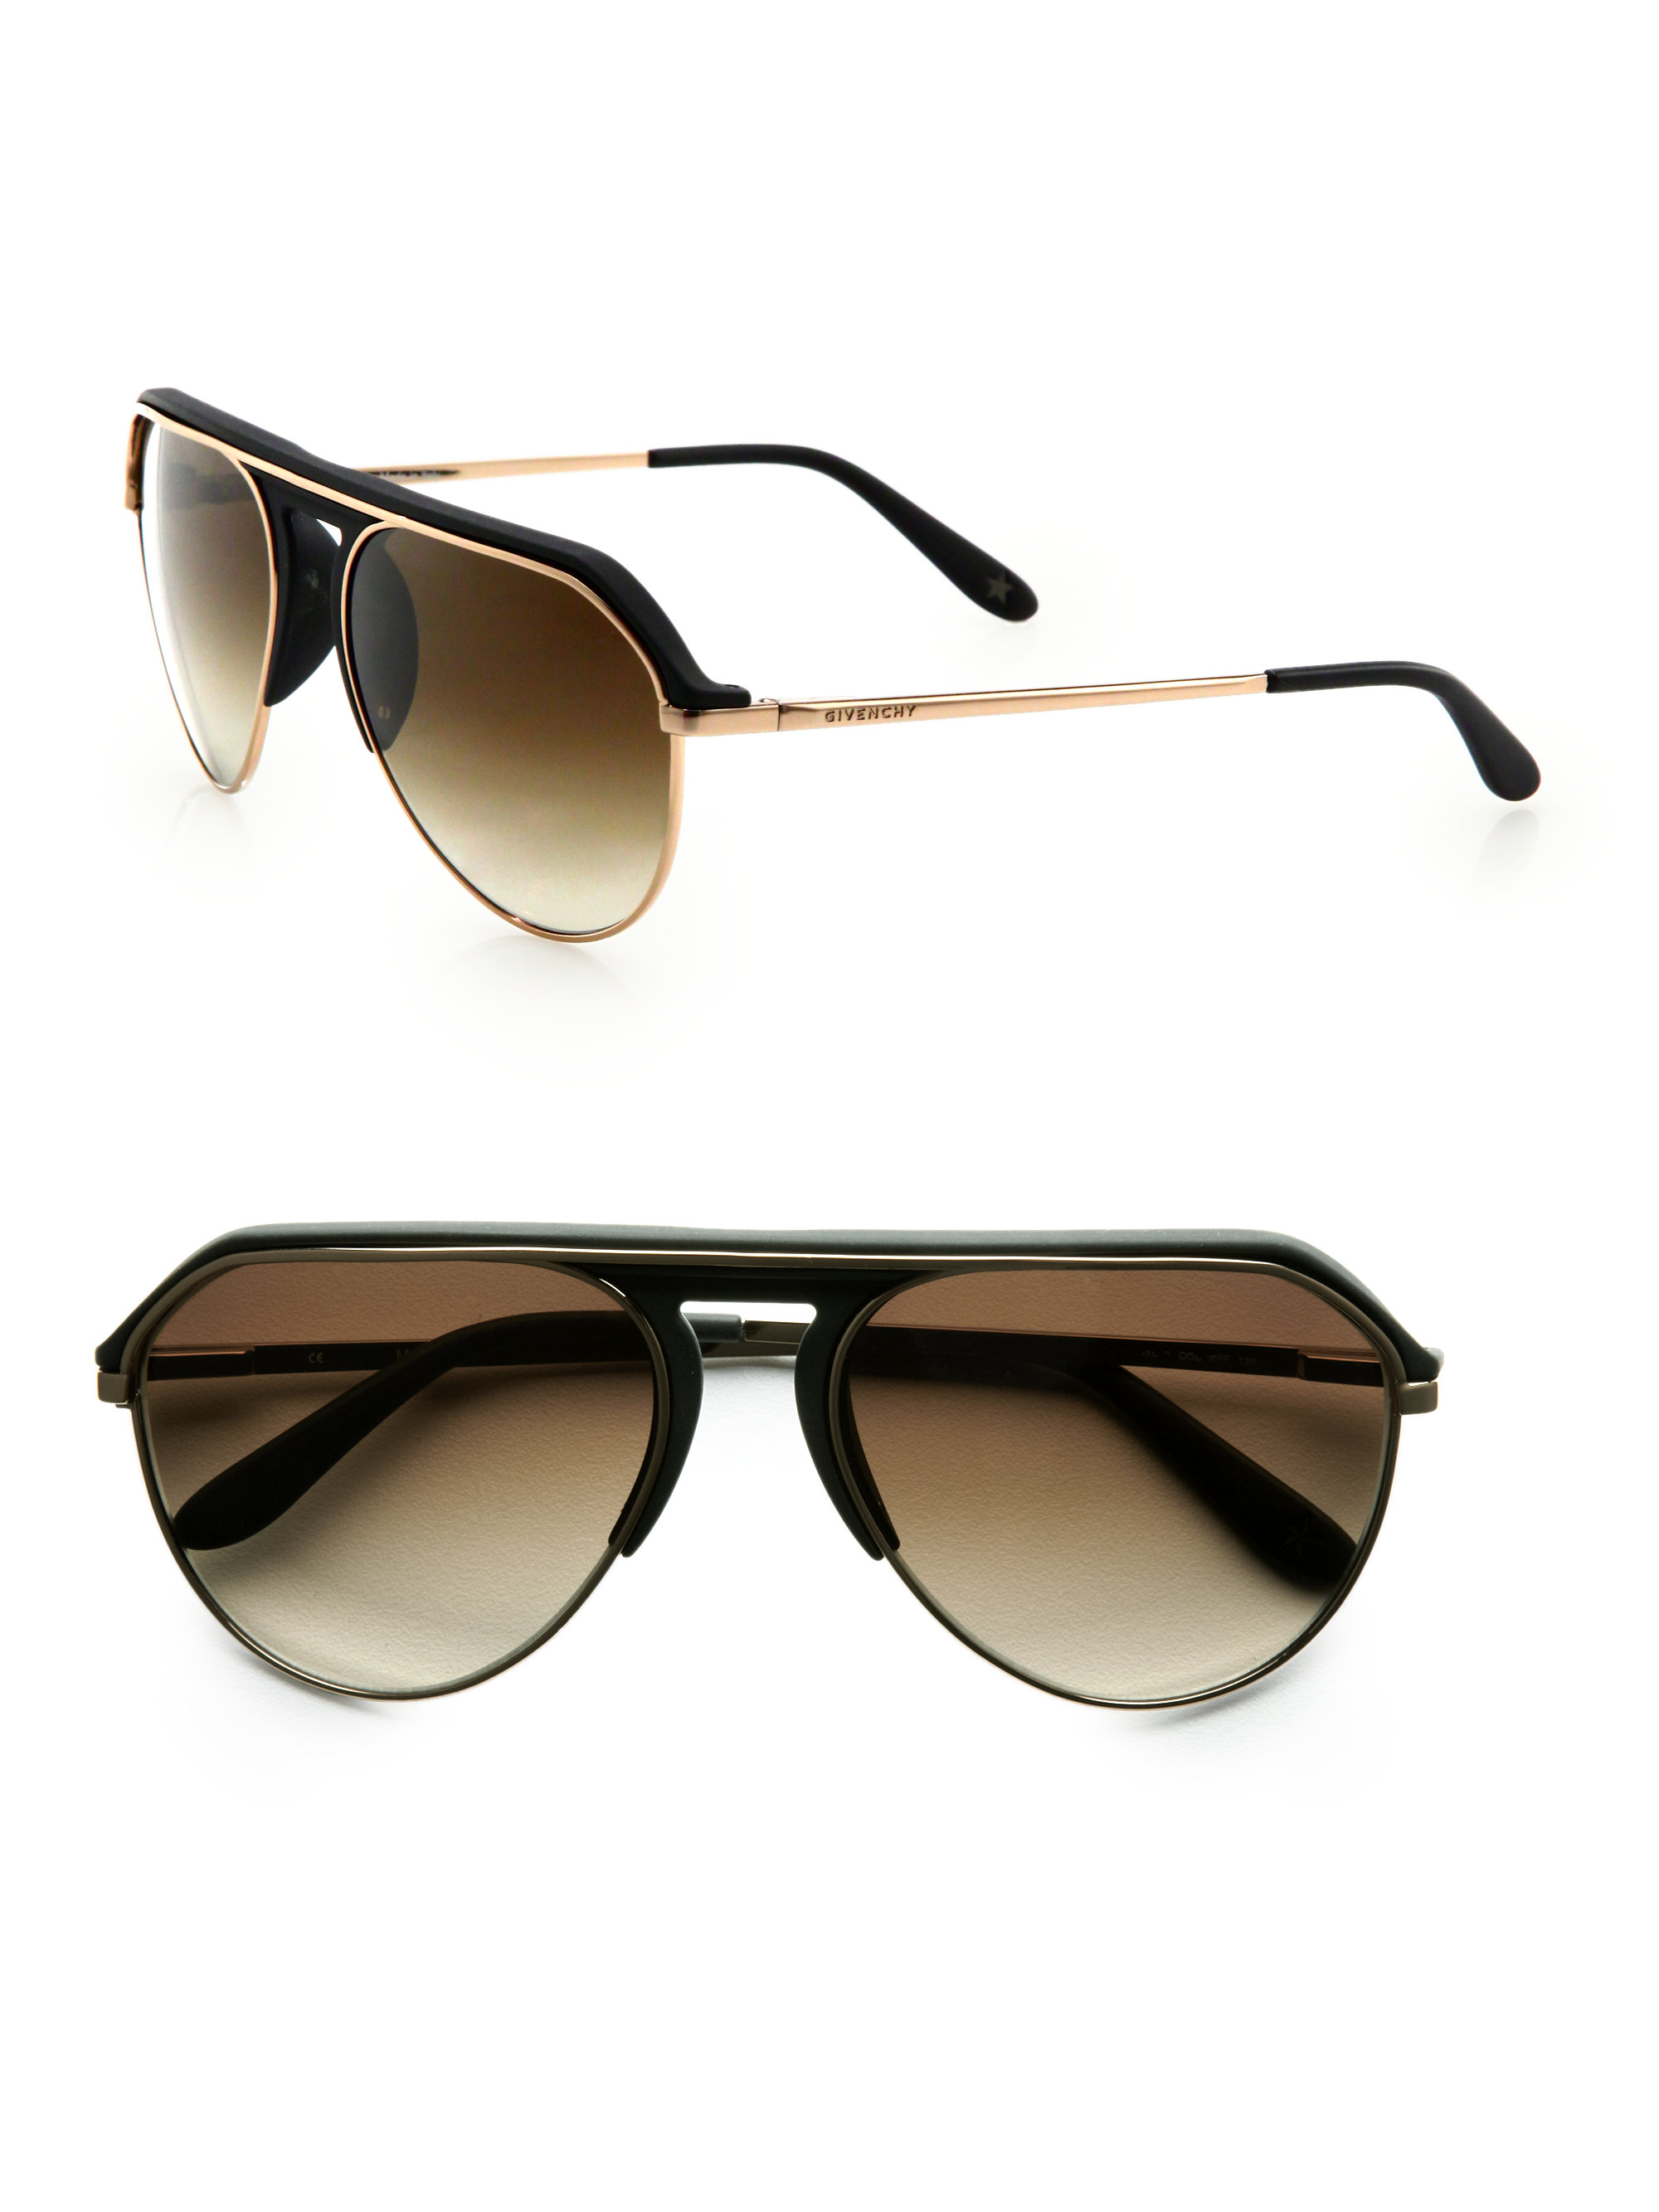 Givenchy Modified Aviator Sunglasses In Brown For Men Lyst